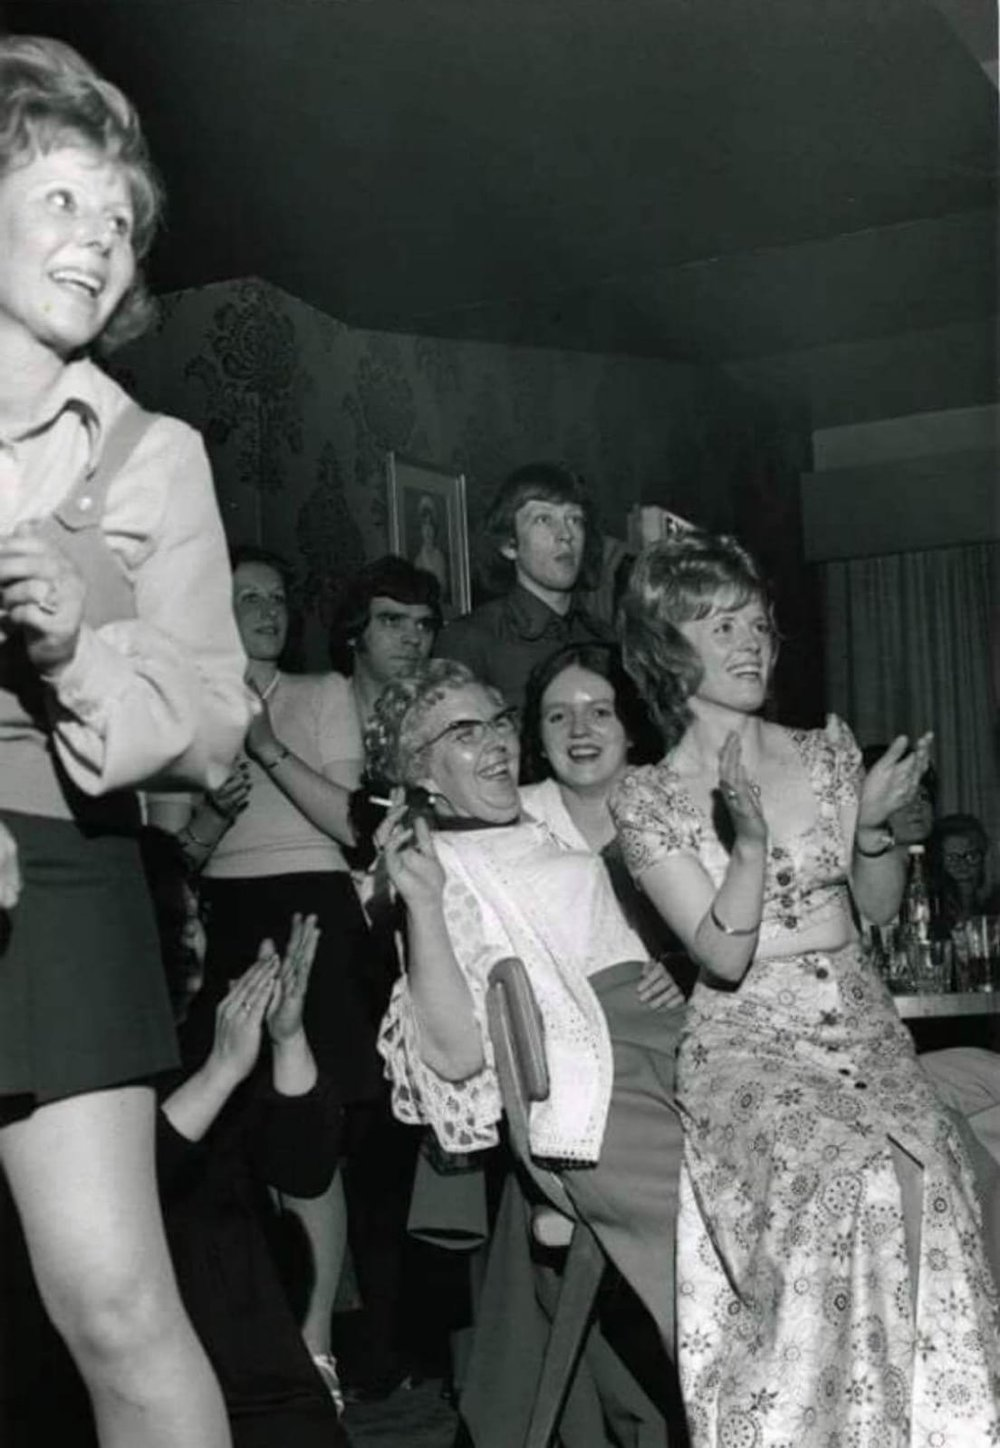 - These ladies were really enjoying this Billy Fury show in the 1970s, but the men appear to have a different opinion!